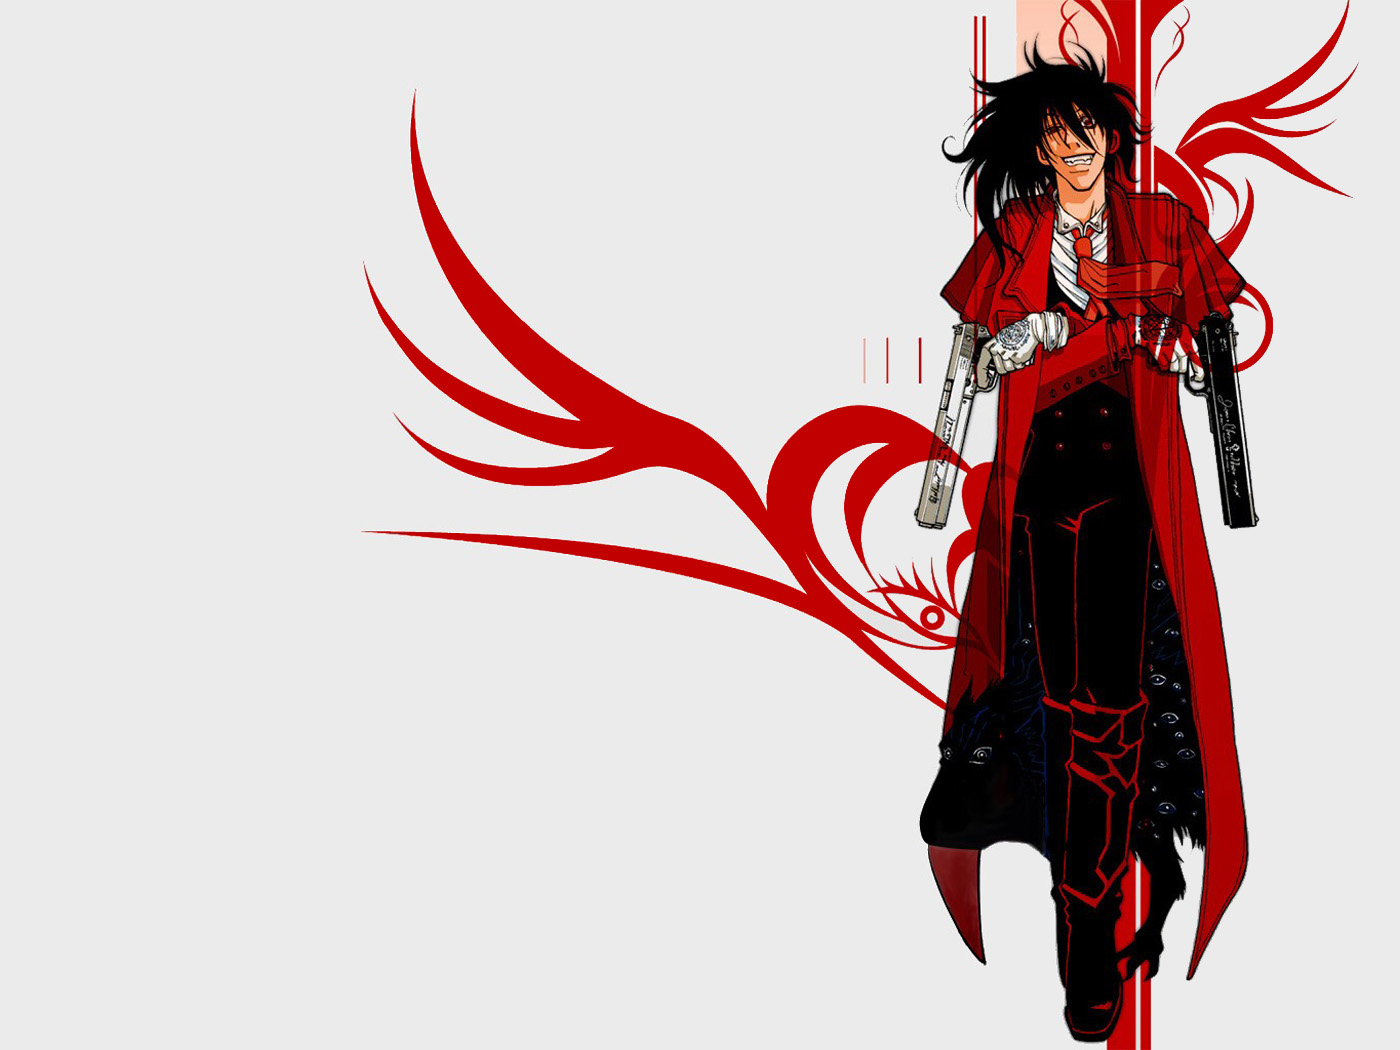 Hellsing wallpaper and background image 1400x1050 id - Anime hellsing wallpaper ...